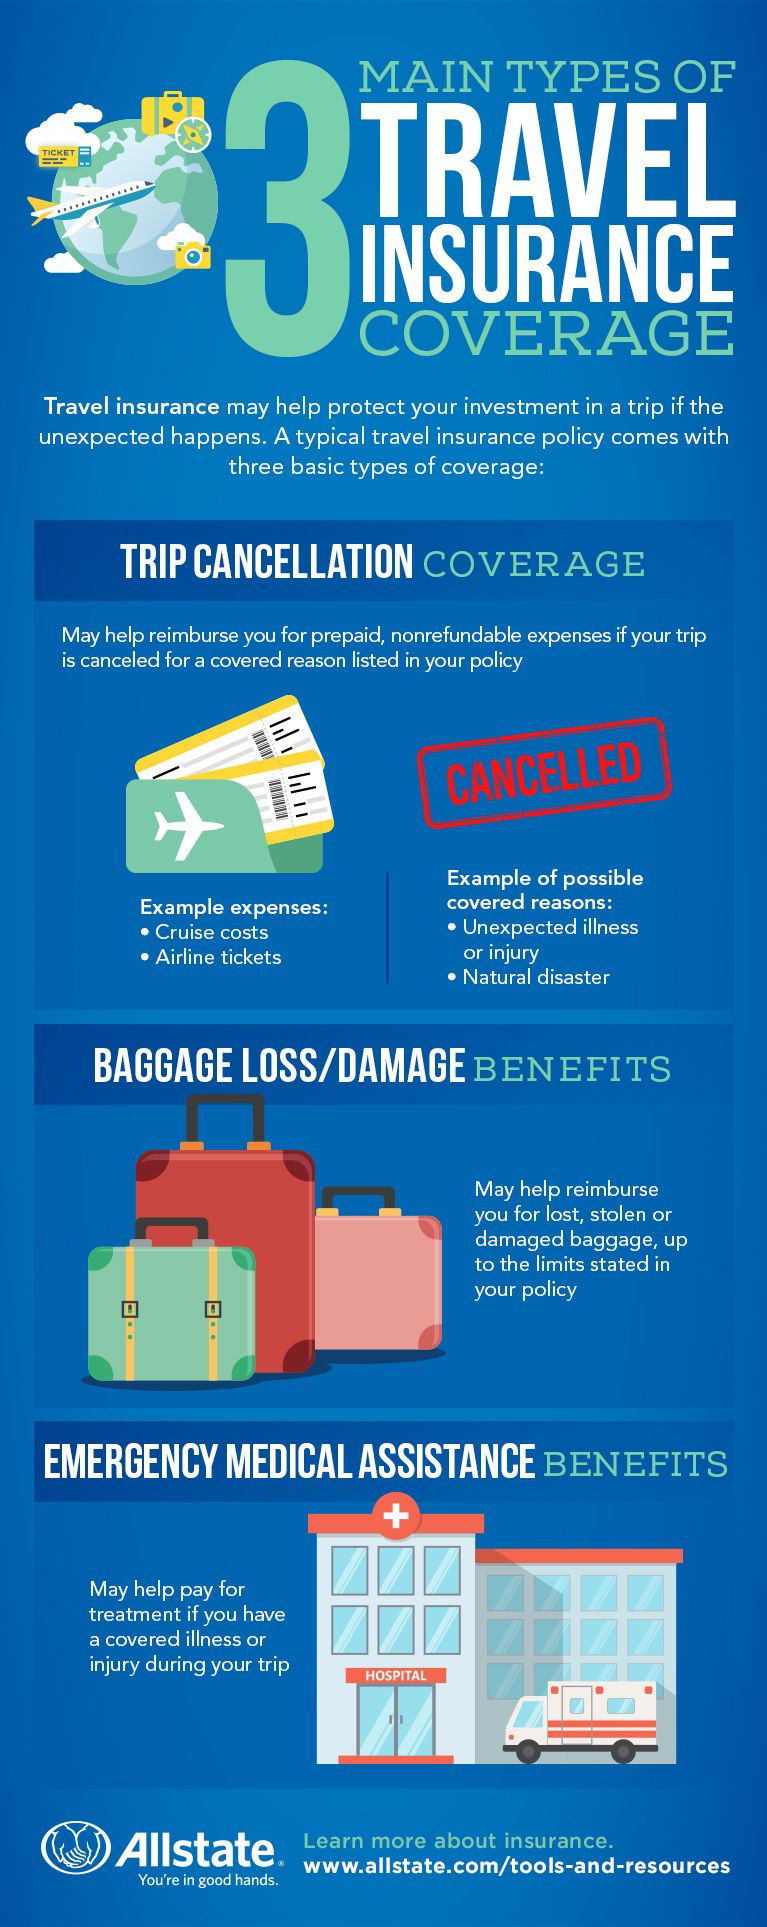 A Typical Travel Insurance Policy Comes With Three Basic Types Of